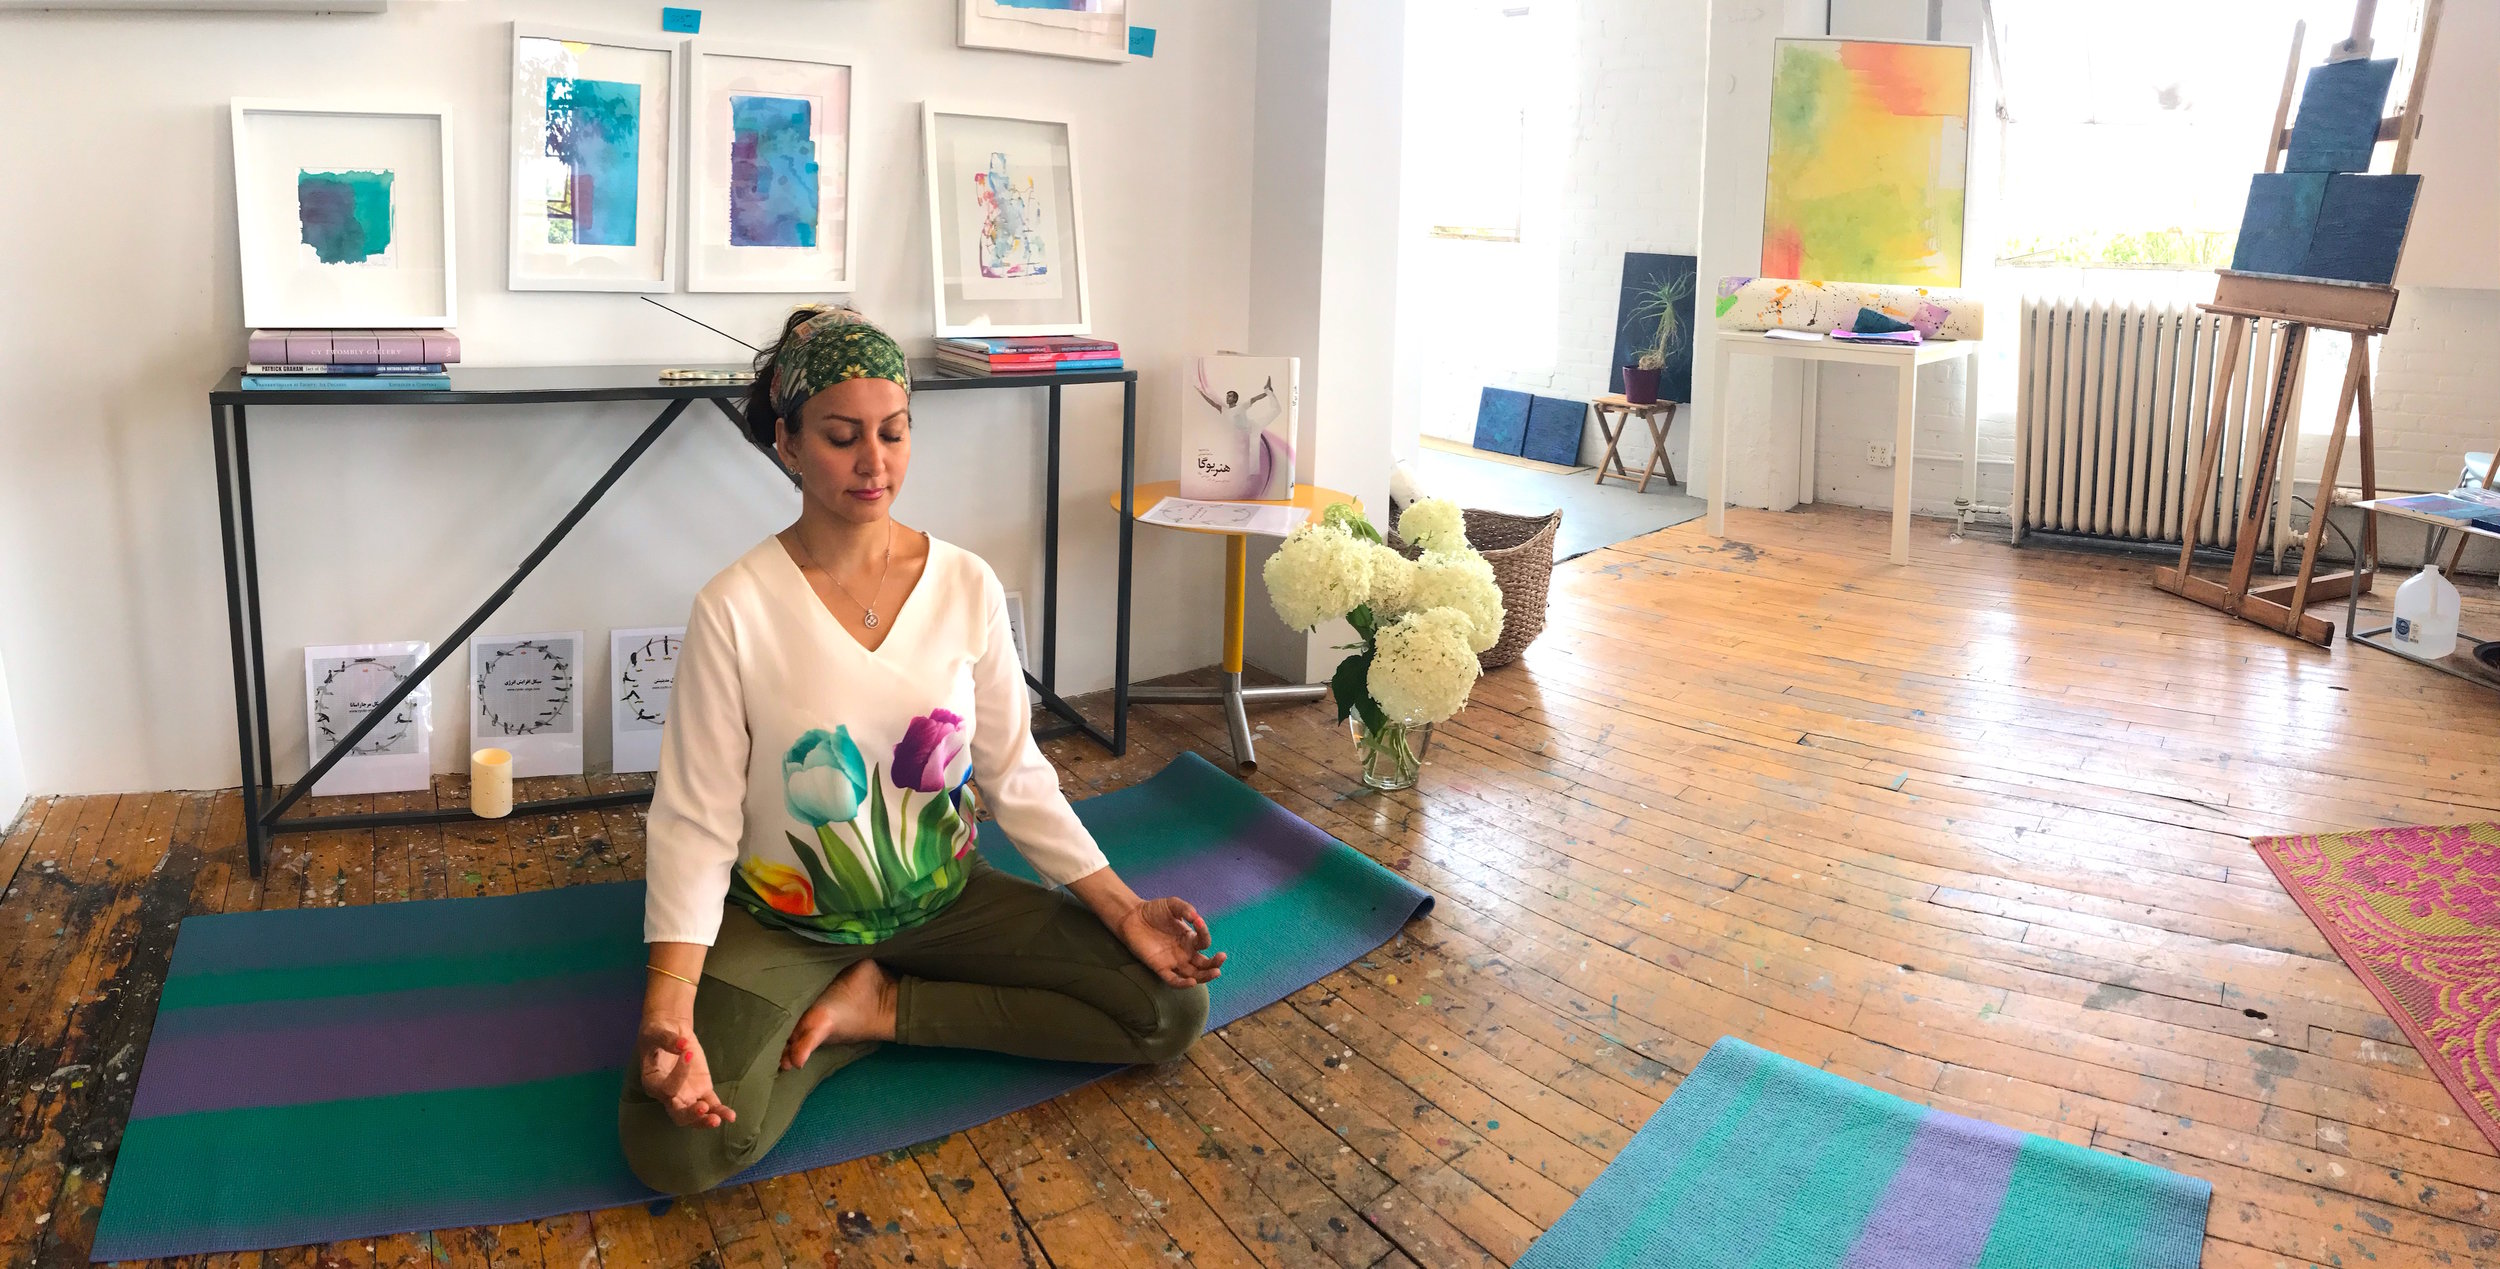 Internationally certified Cyclic Yoga Instructor Elham Ayoubi will collaborate with Eyenga to offer three very special and individualized restorative sessions in the studio!